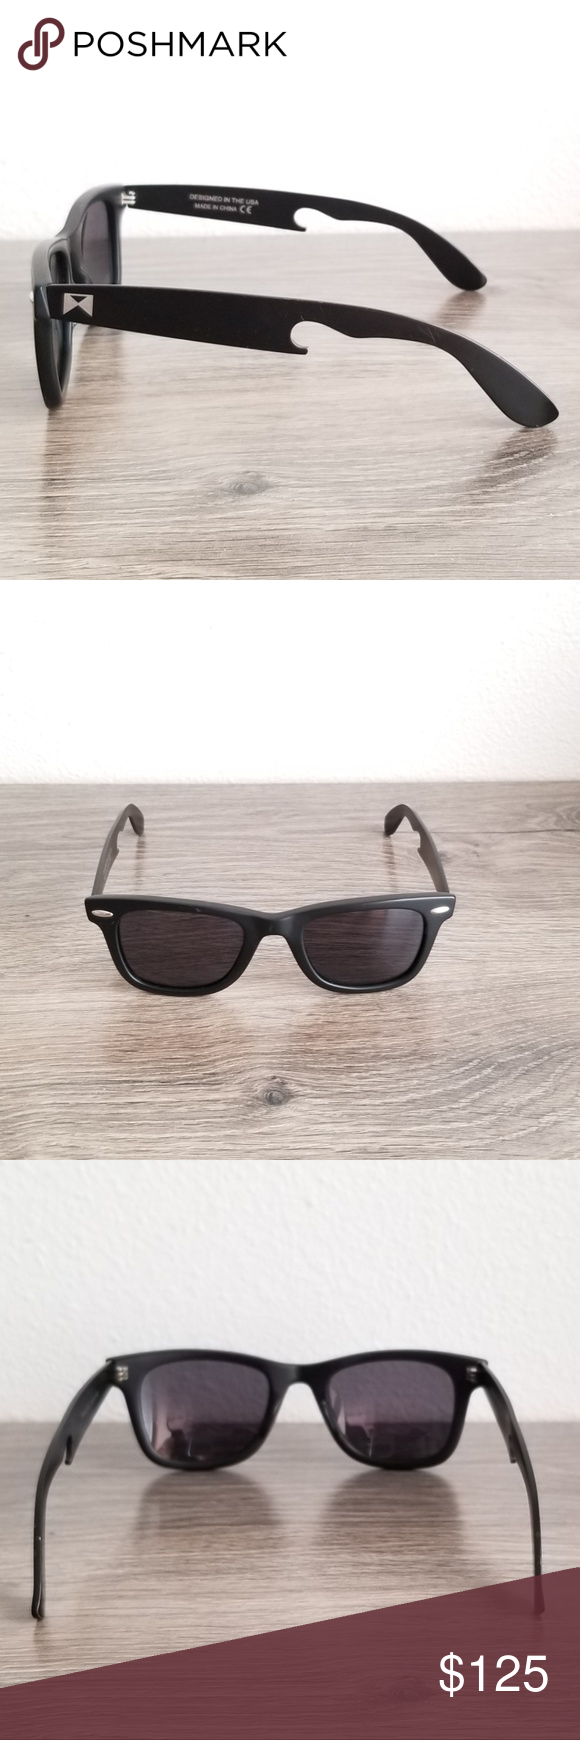 98644fa990 William Painter Sunglasses The Hook Model William Painter Sunglasses The  Hook Model. Good condition just a little wear such as a few light scratches  on the ...